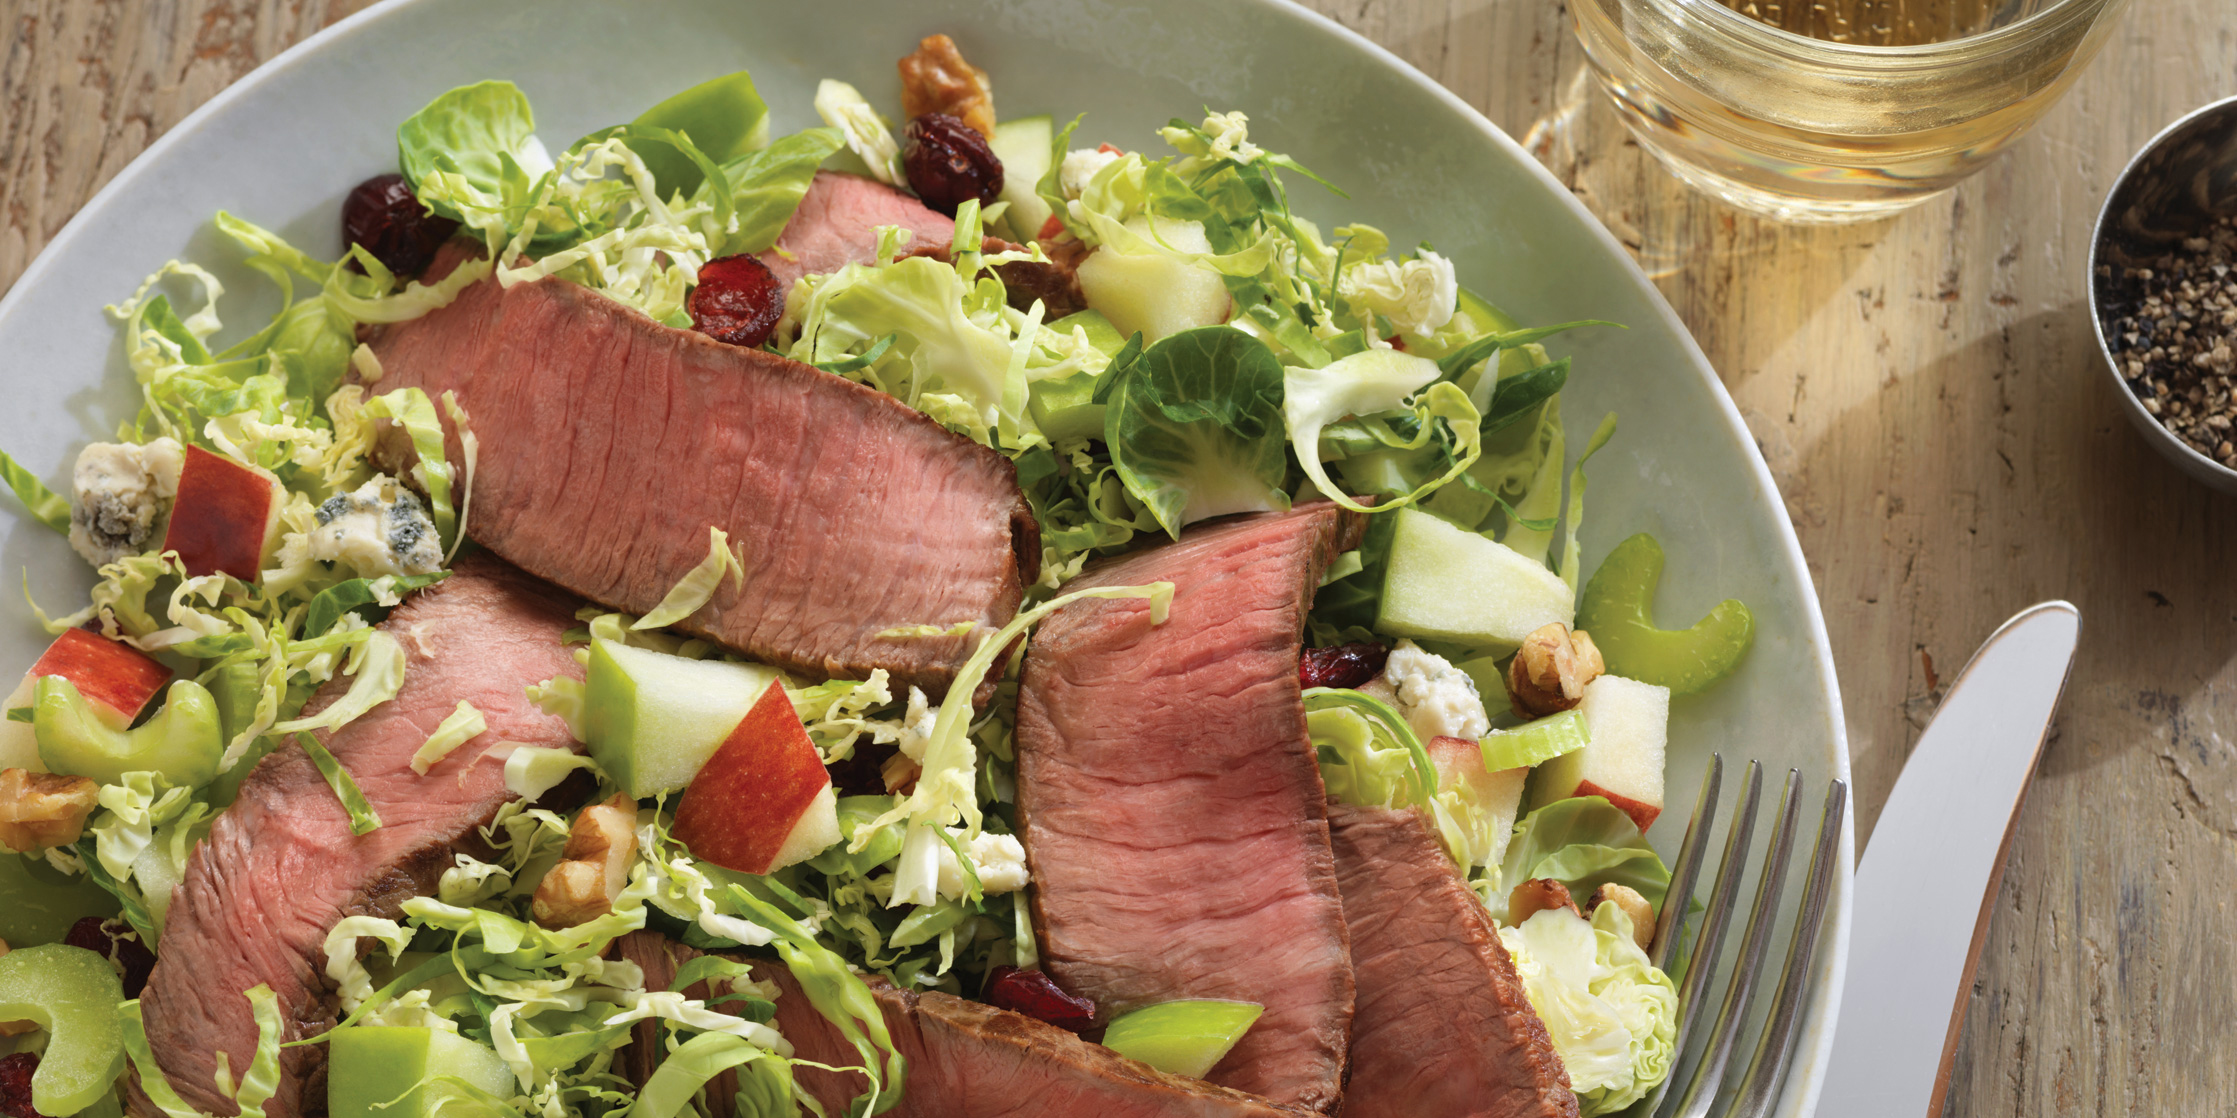 Four Seasons Beef & Brussels Sprout Salad